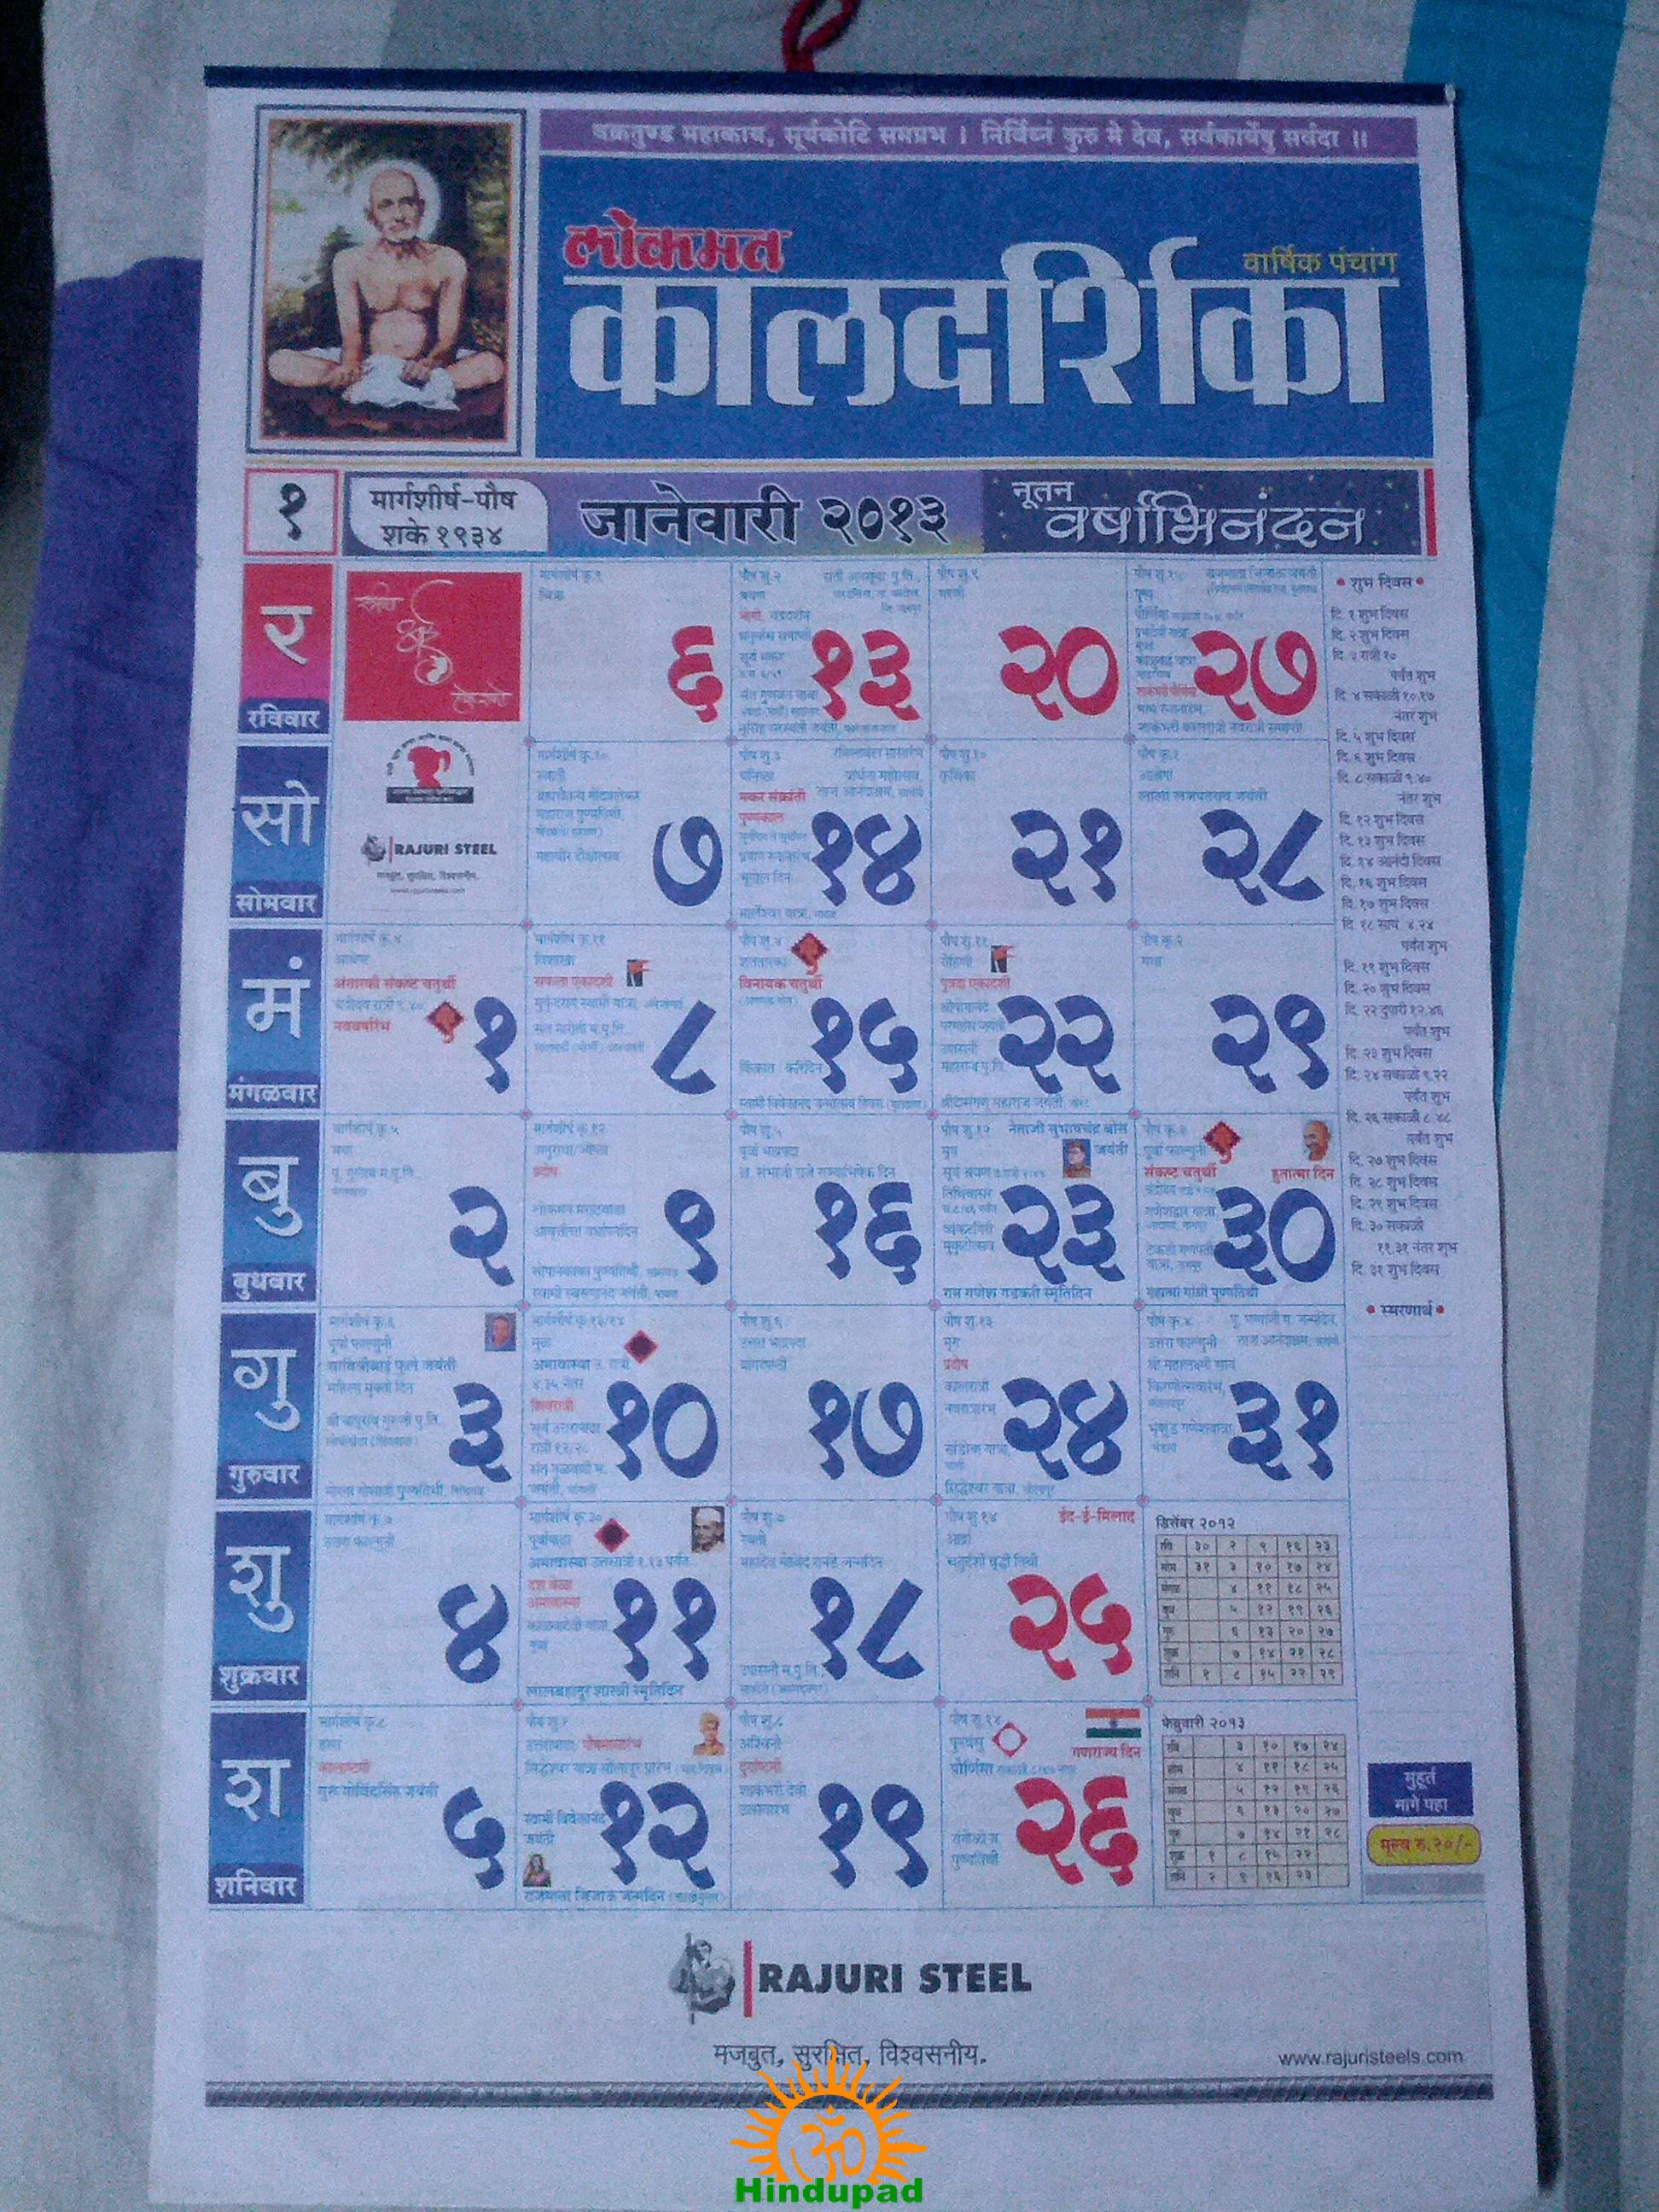 2013 2013 telugu calendar march 2013 telugu festivals march 2013